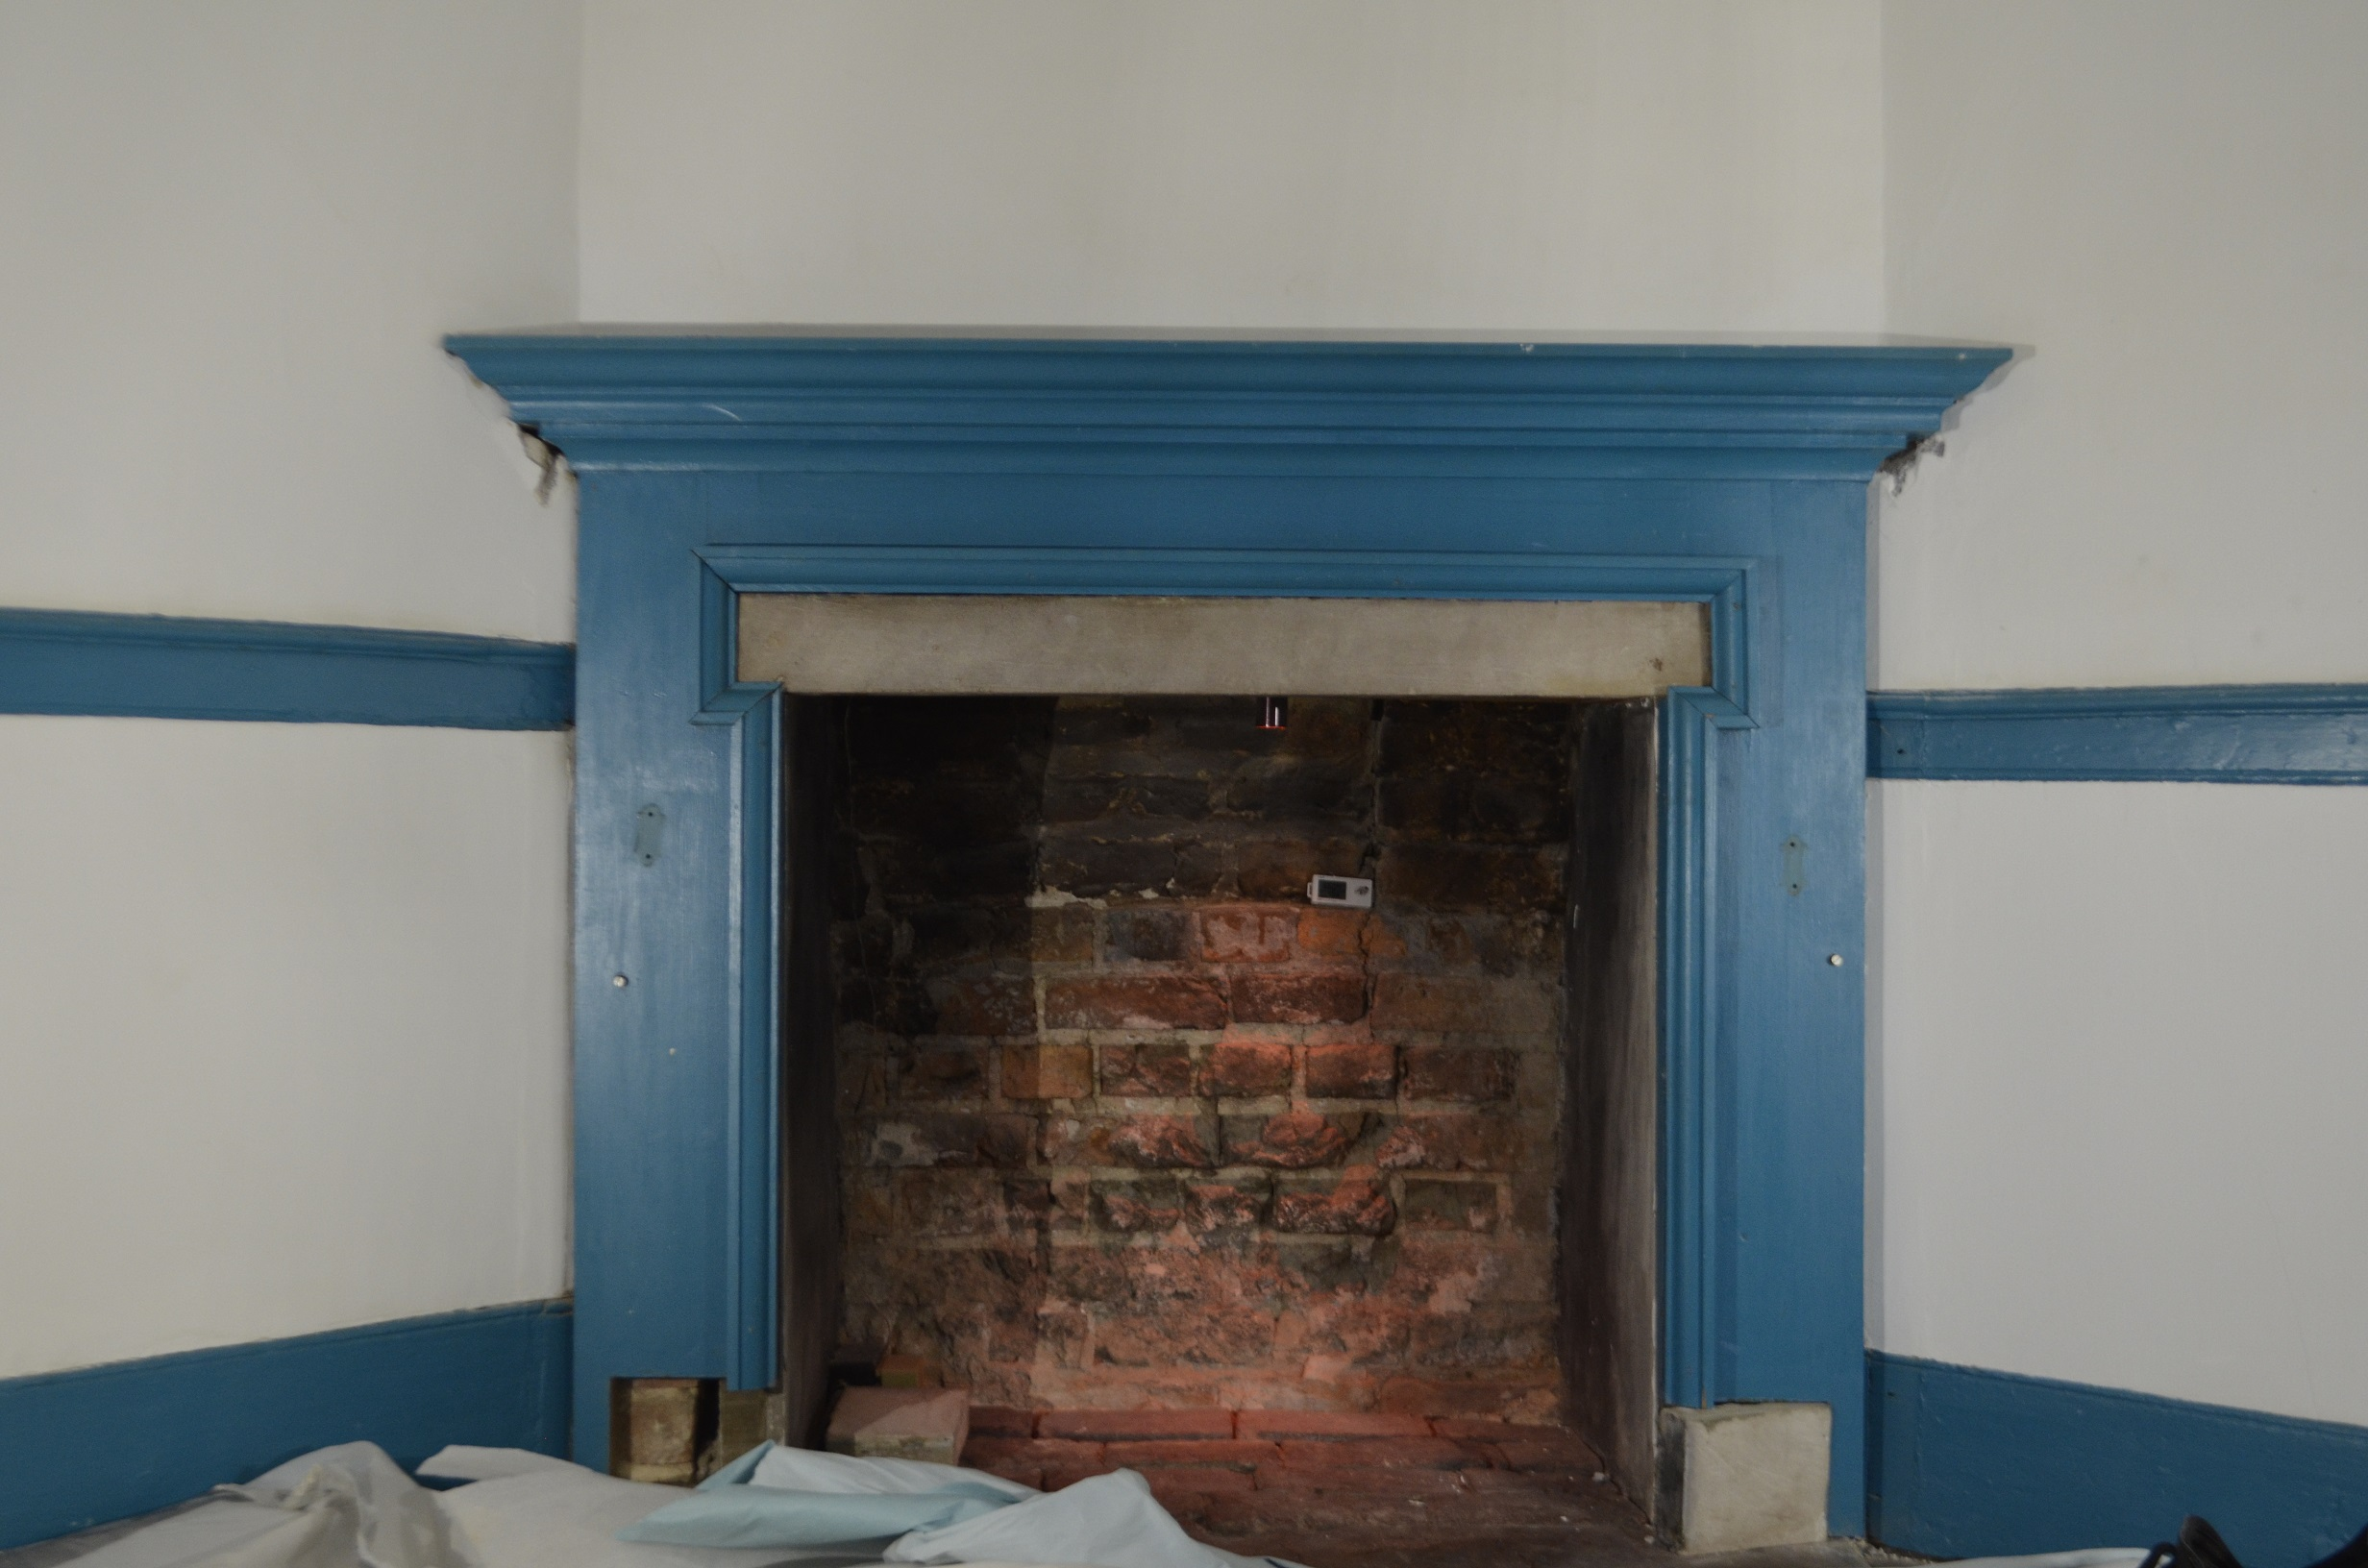 20th-century mantel with one plinth block removed in the bottom left corner.